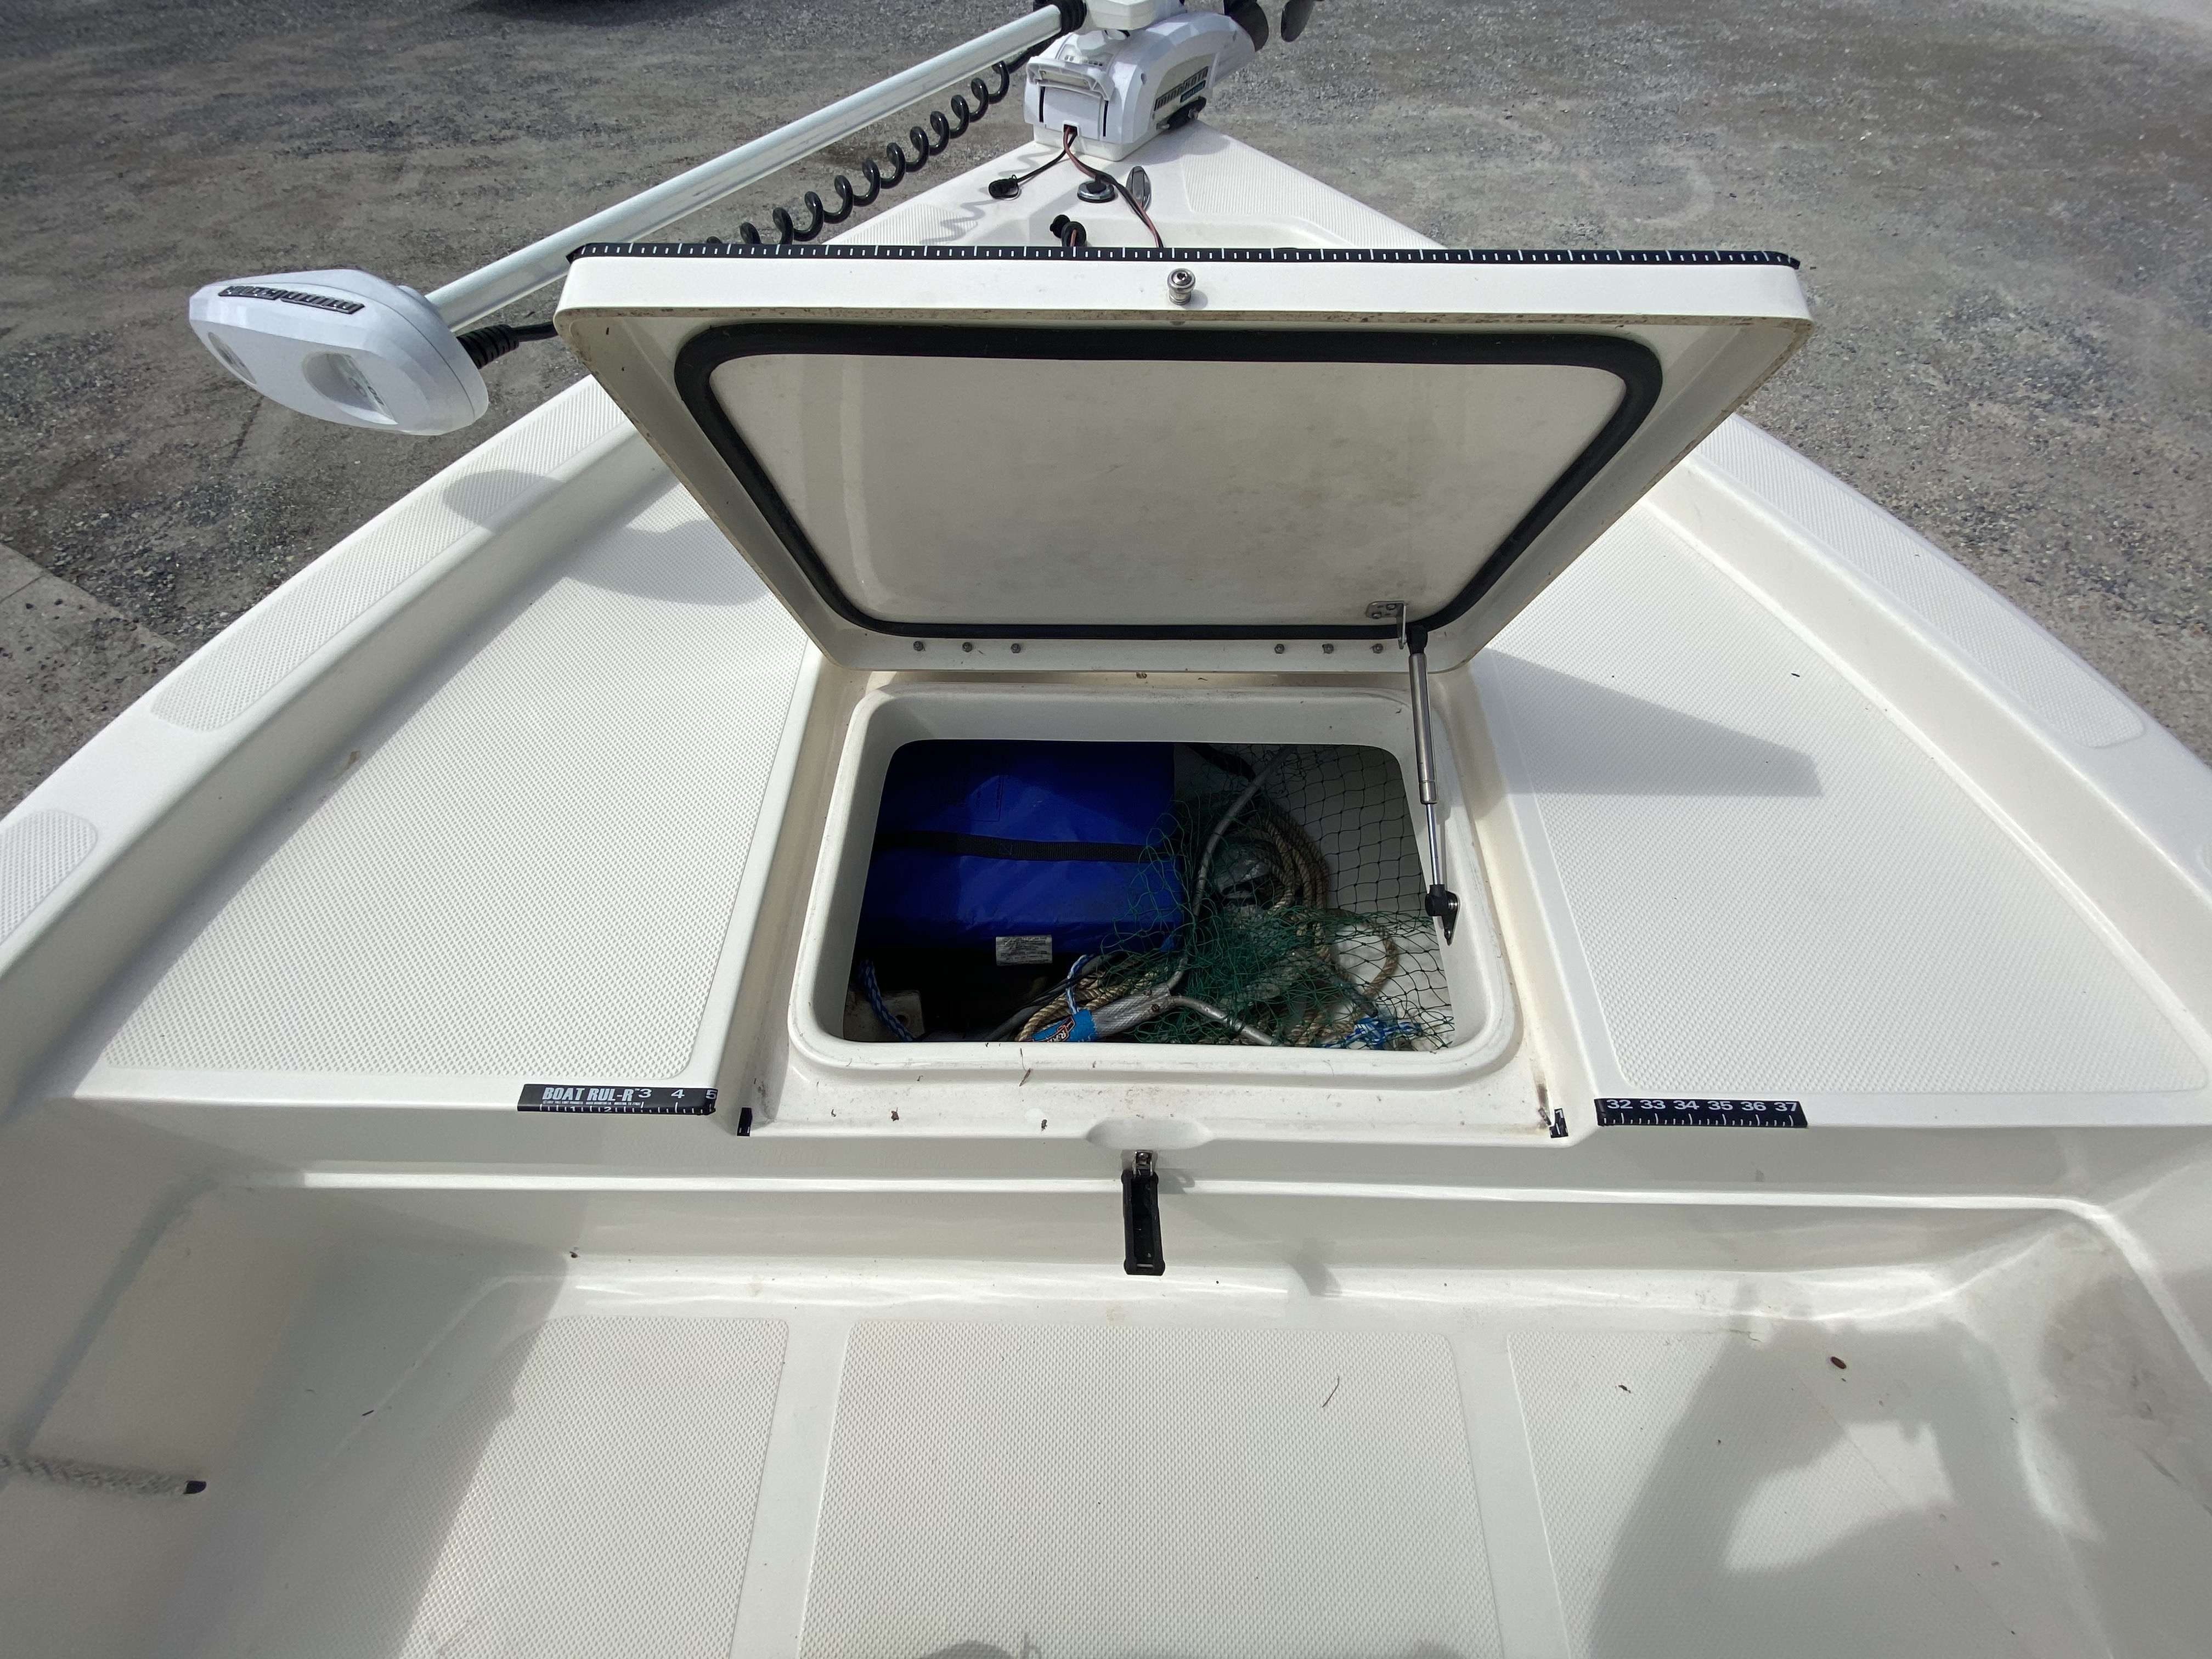 2016 Skeeter boat for sale, model of the boat is SX200 & Image # 19 of 19